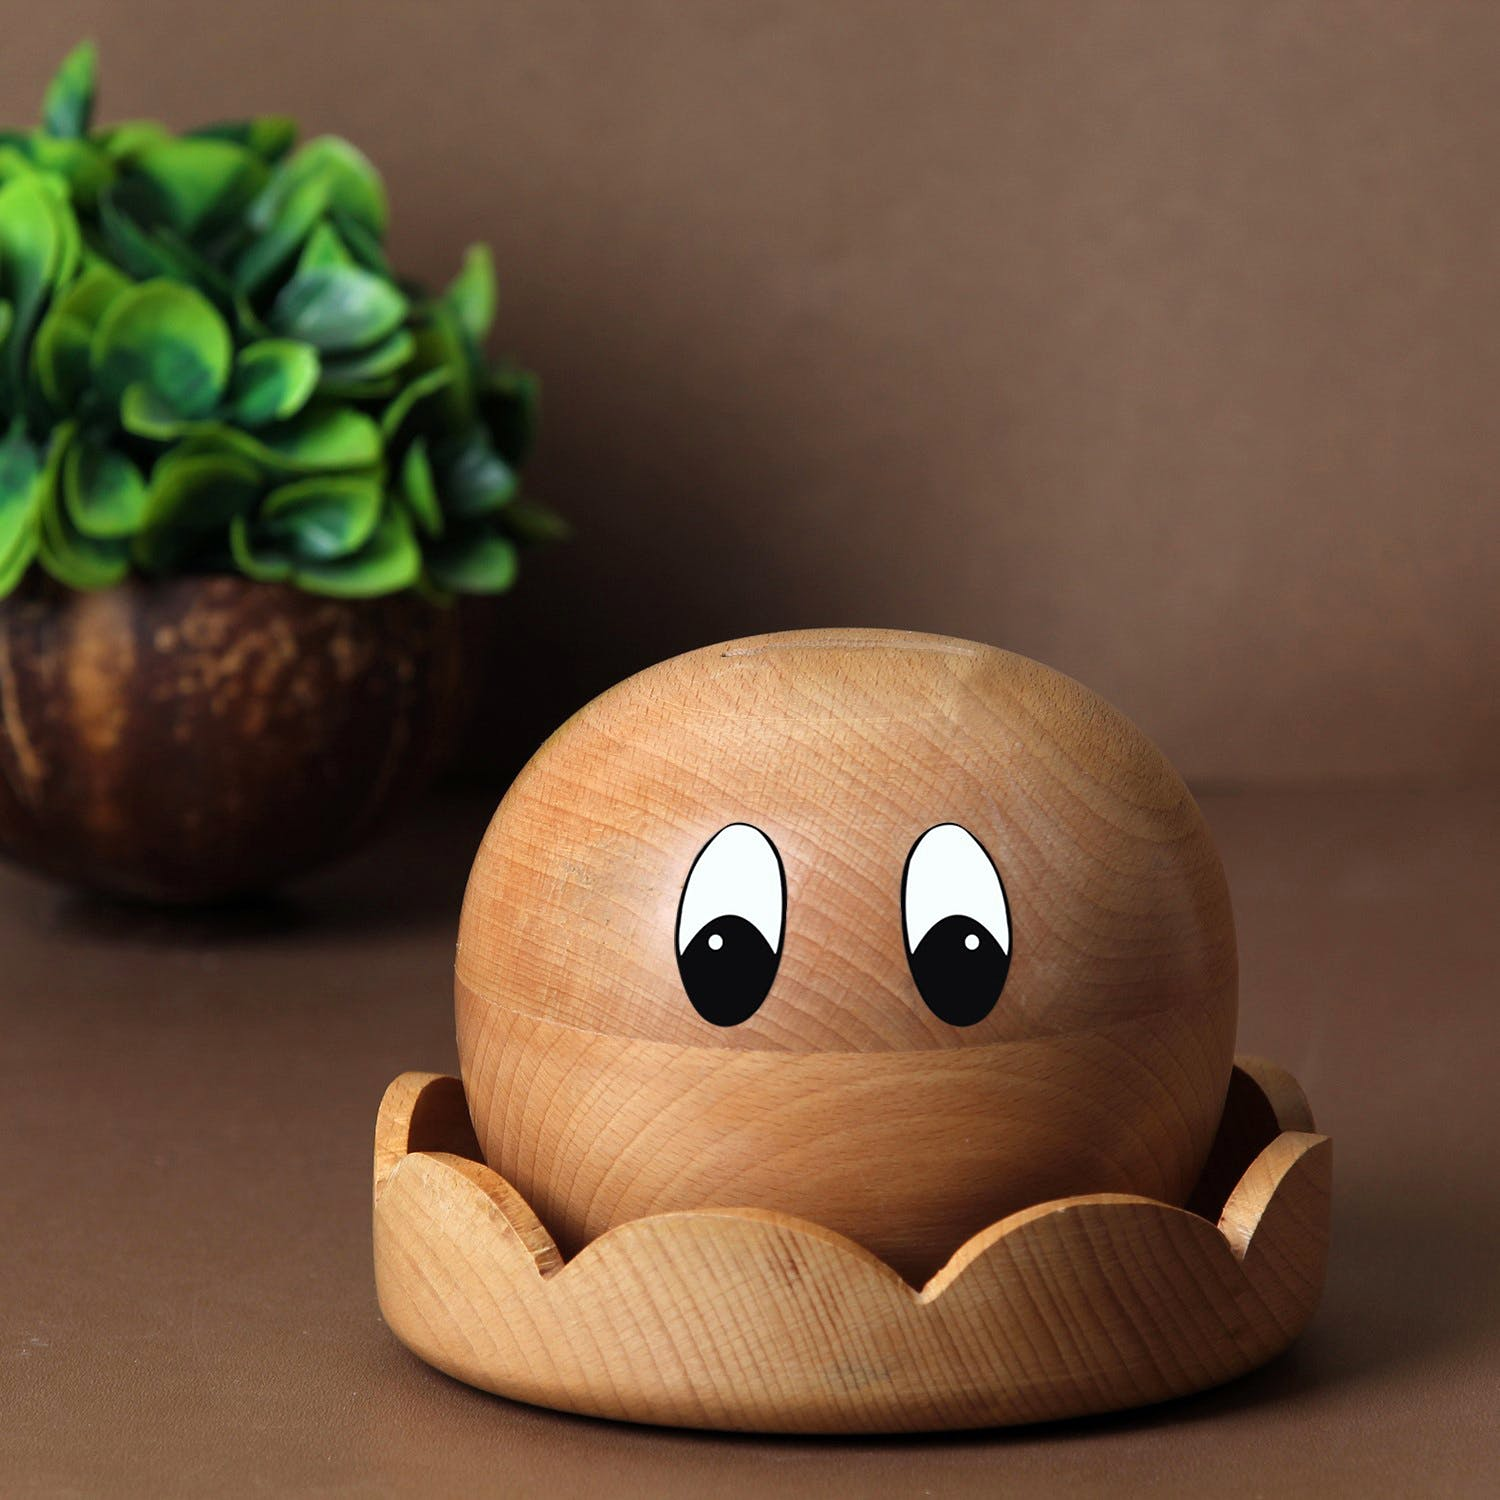 Toy,Wood,Plant,Ingredient,Natural foods,Stuffed toy,Terrestrial animal,Grass,Art,Herb